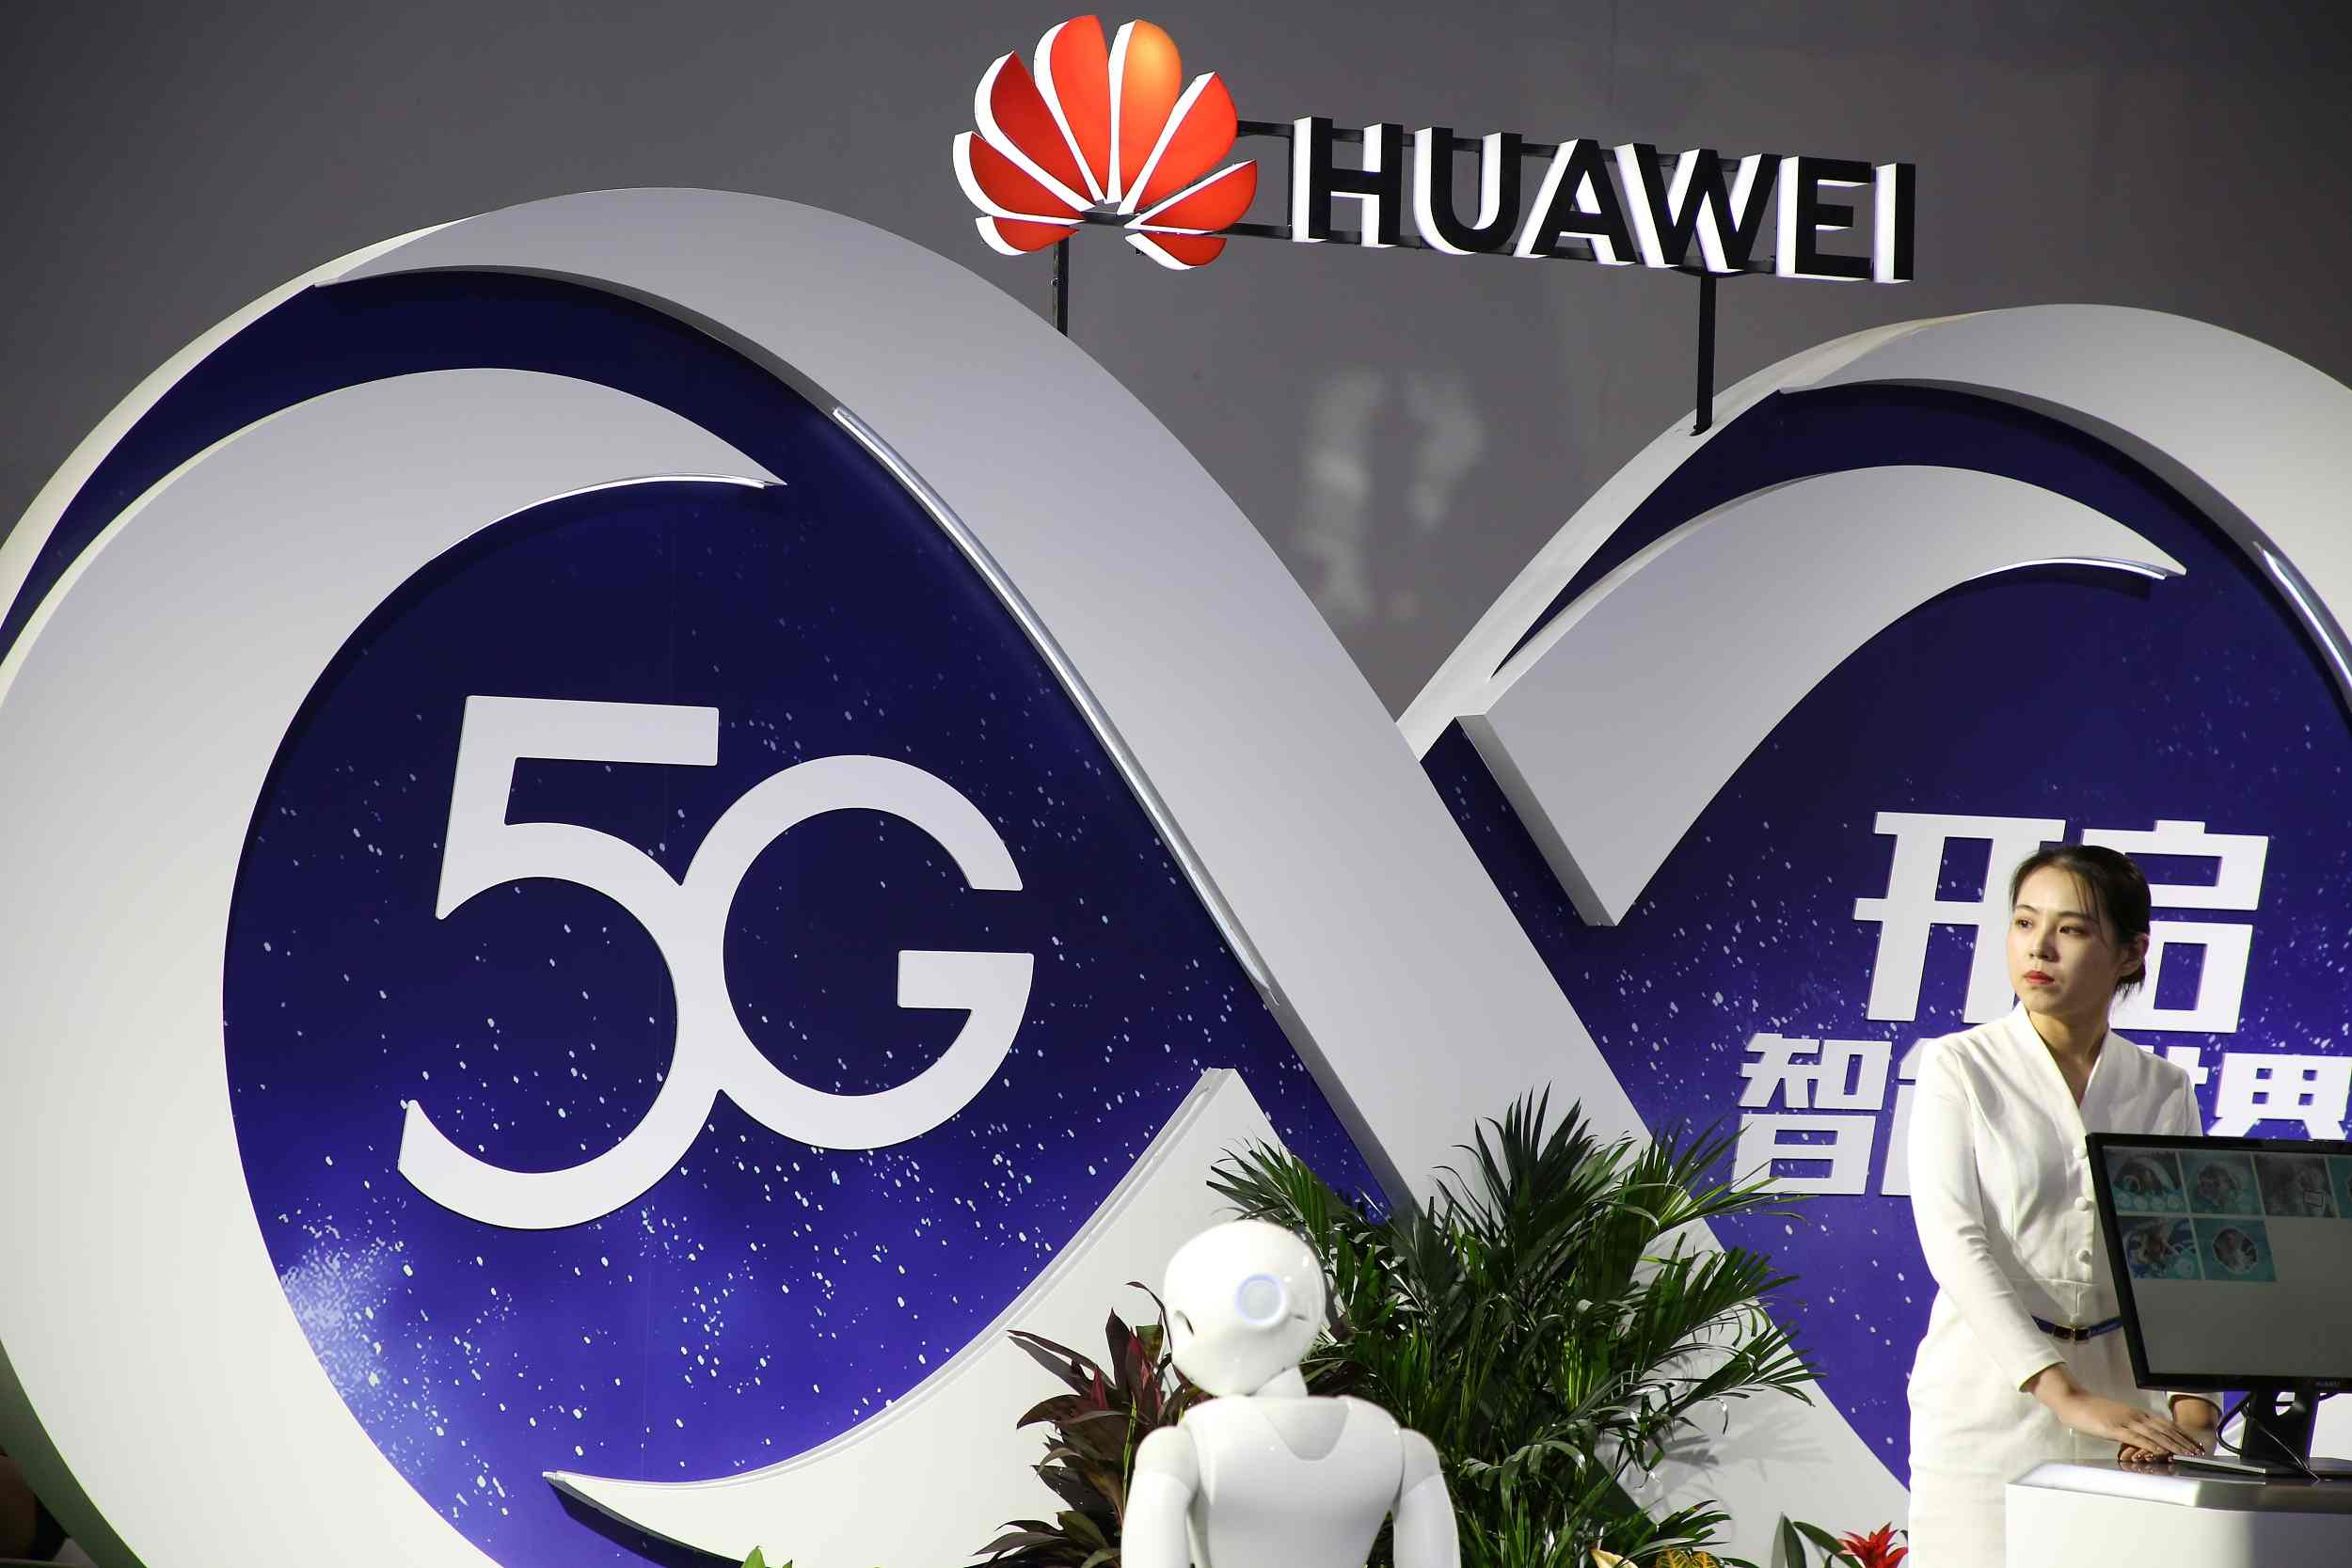 Huawei to spend two billion USD on cyber security - China